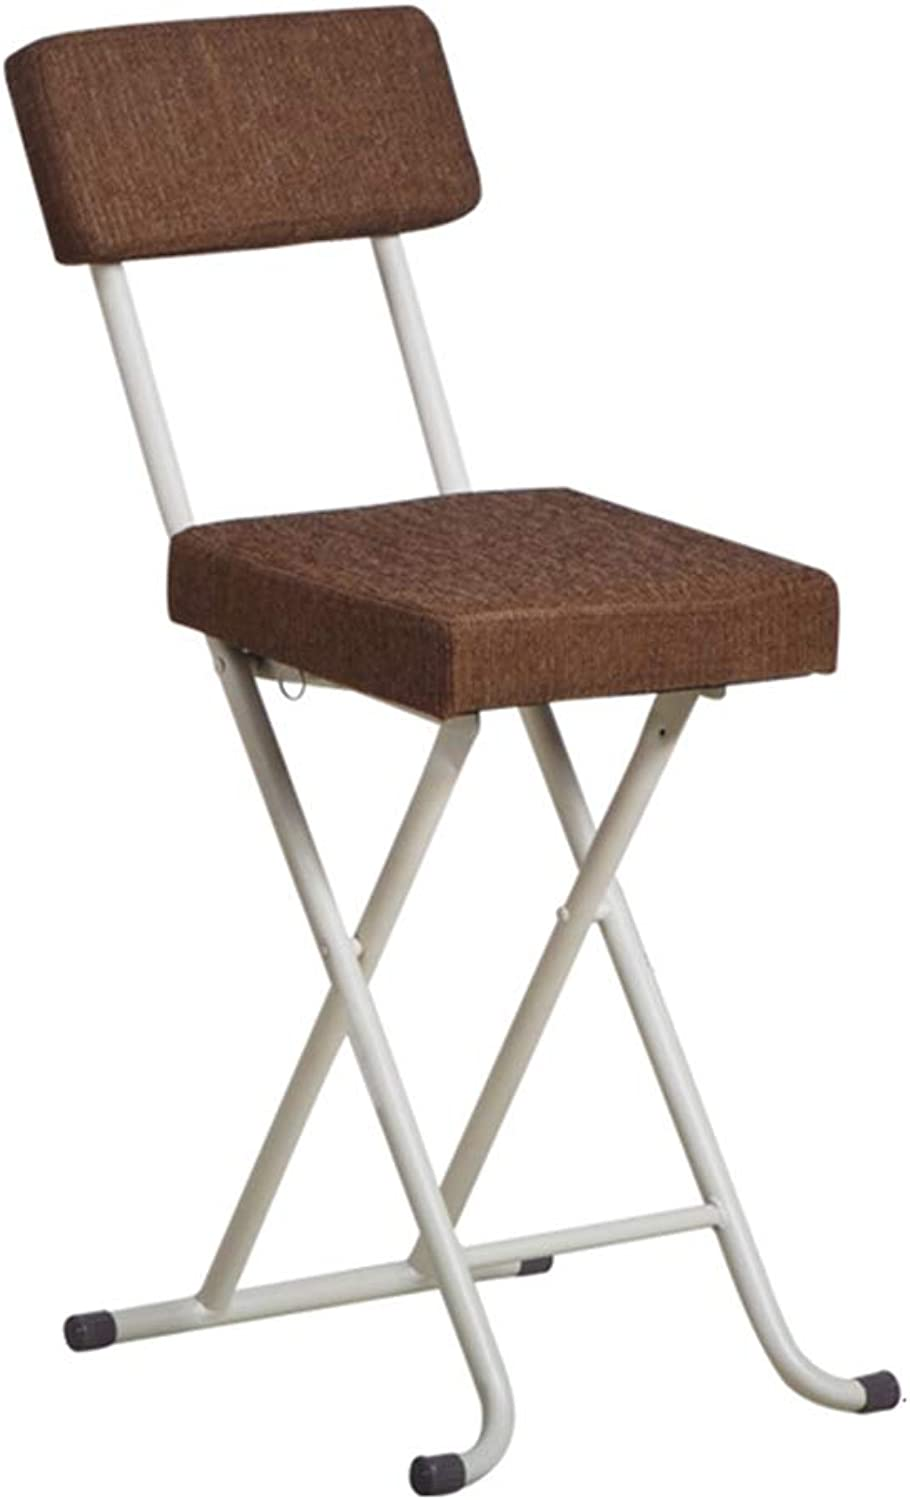 Padded Folding High Chair Bar Stool Compact High Chair Steel Frame Plastic Seat Kitchen Portable - White, Brown